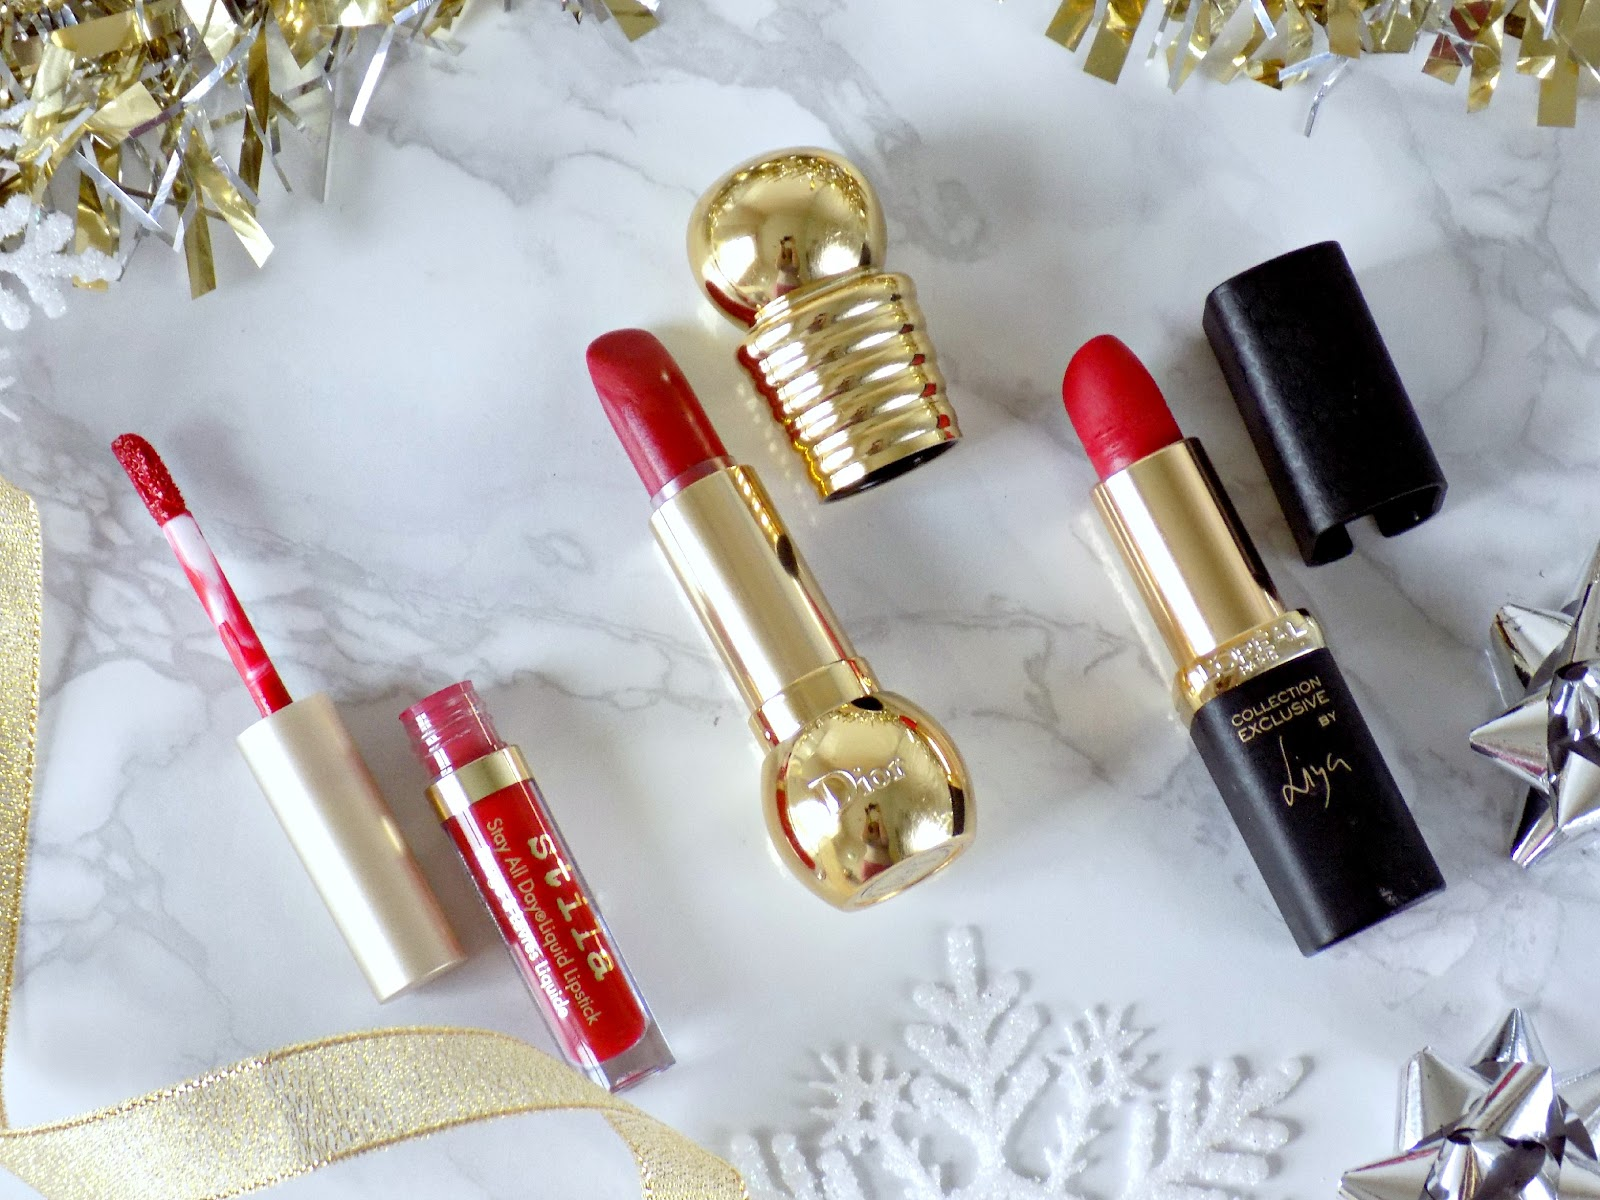 Festive red lipsticks